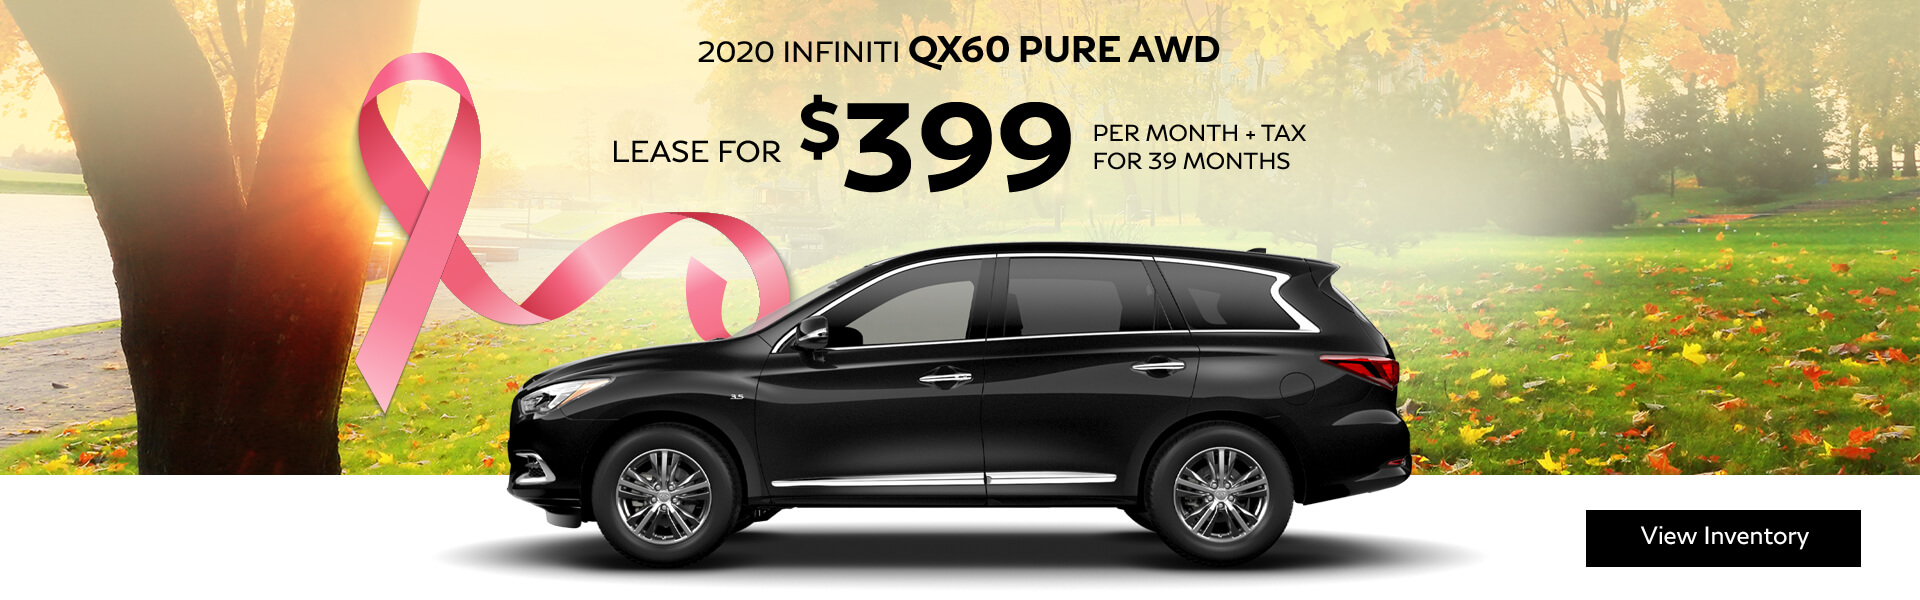 2020 QX60 PURE - Lease for $399